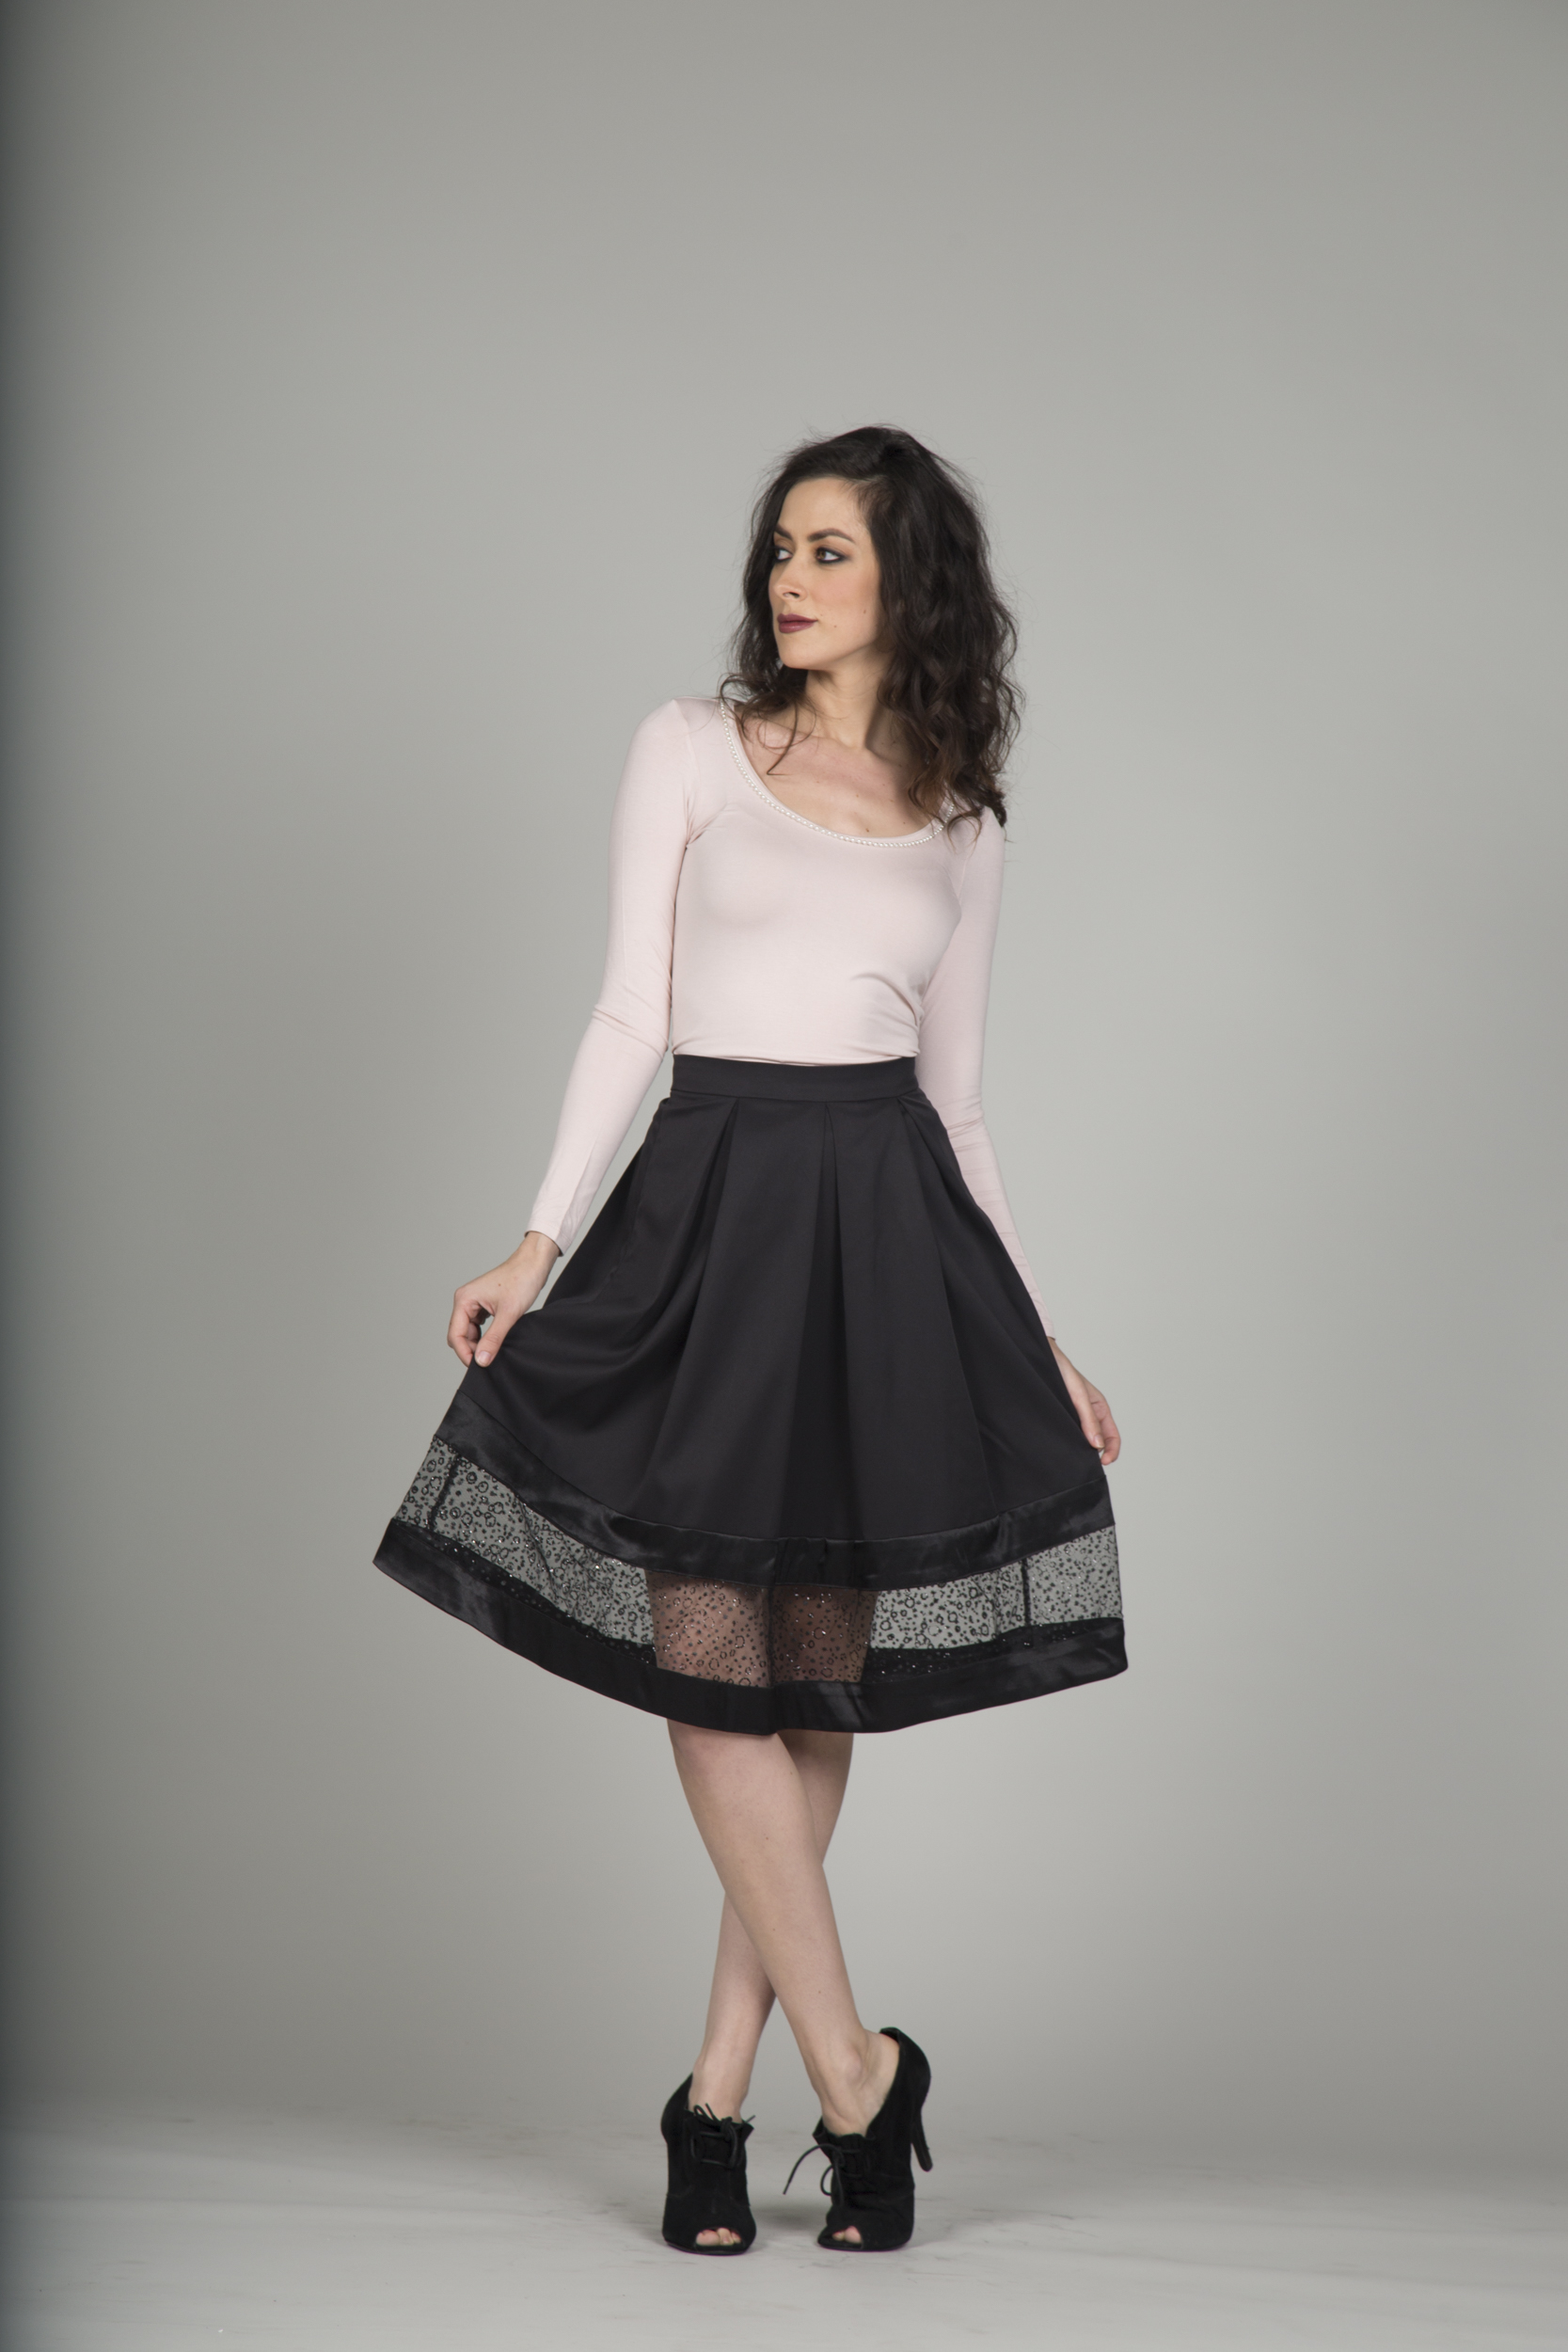 """This is one of my favorite pieces in this formal collection.  There is such a variety of colored tops that can be worn with this skirt.  The pleats give it a structural form and fullness to the skirt.  The patterned tulle border shows just a little bit of leg but still can be worn professionally with leggings or tights."" -BhavyJ"